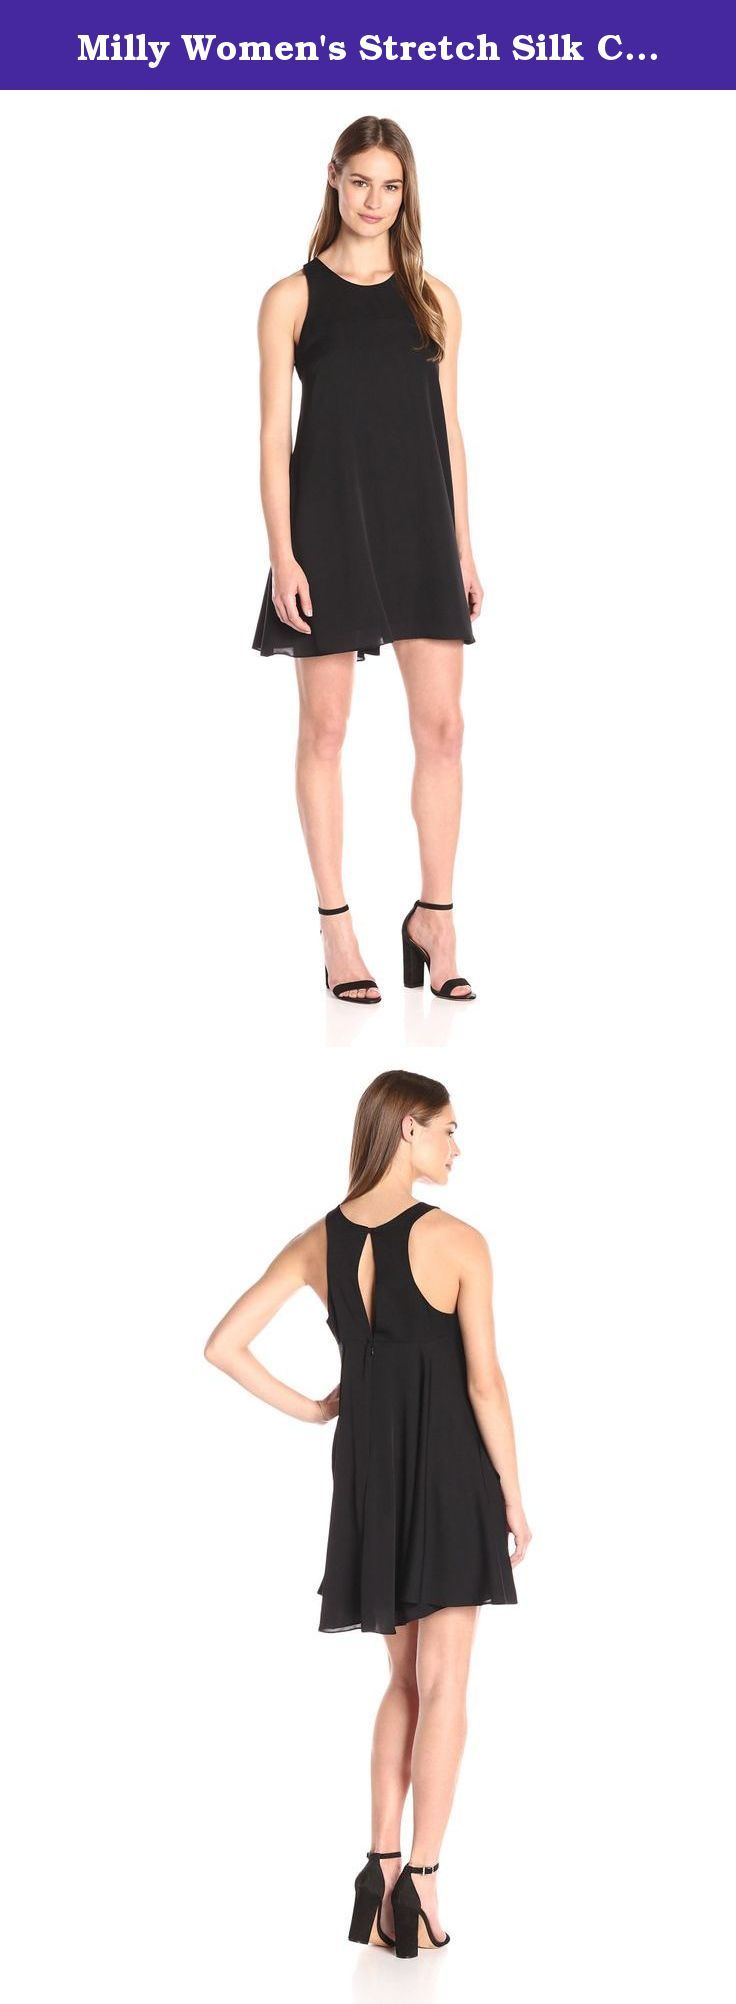 Milly Women's Stretch Silk Crepe Trapeze Dress, Black, 8. Trapeze dress in stretch silk crepe in black. Button at back neck.